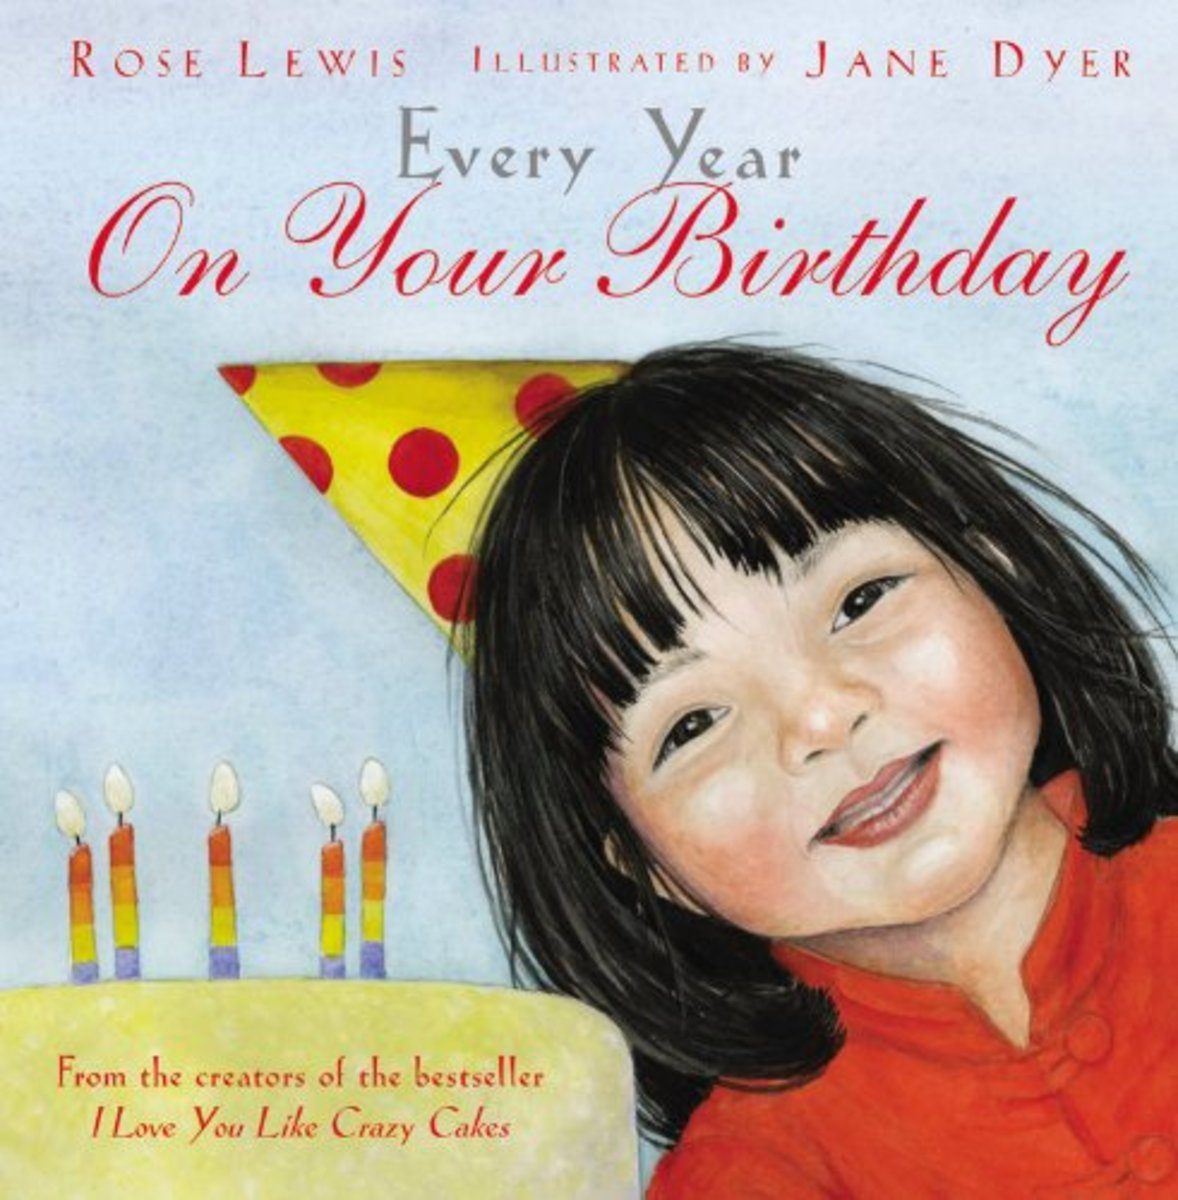 Every Year on Your Birthday by Rose Lewis